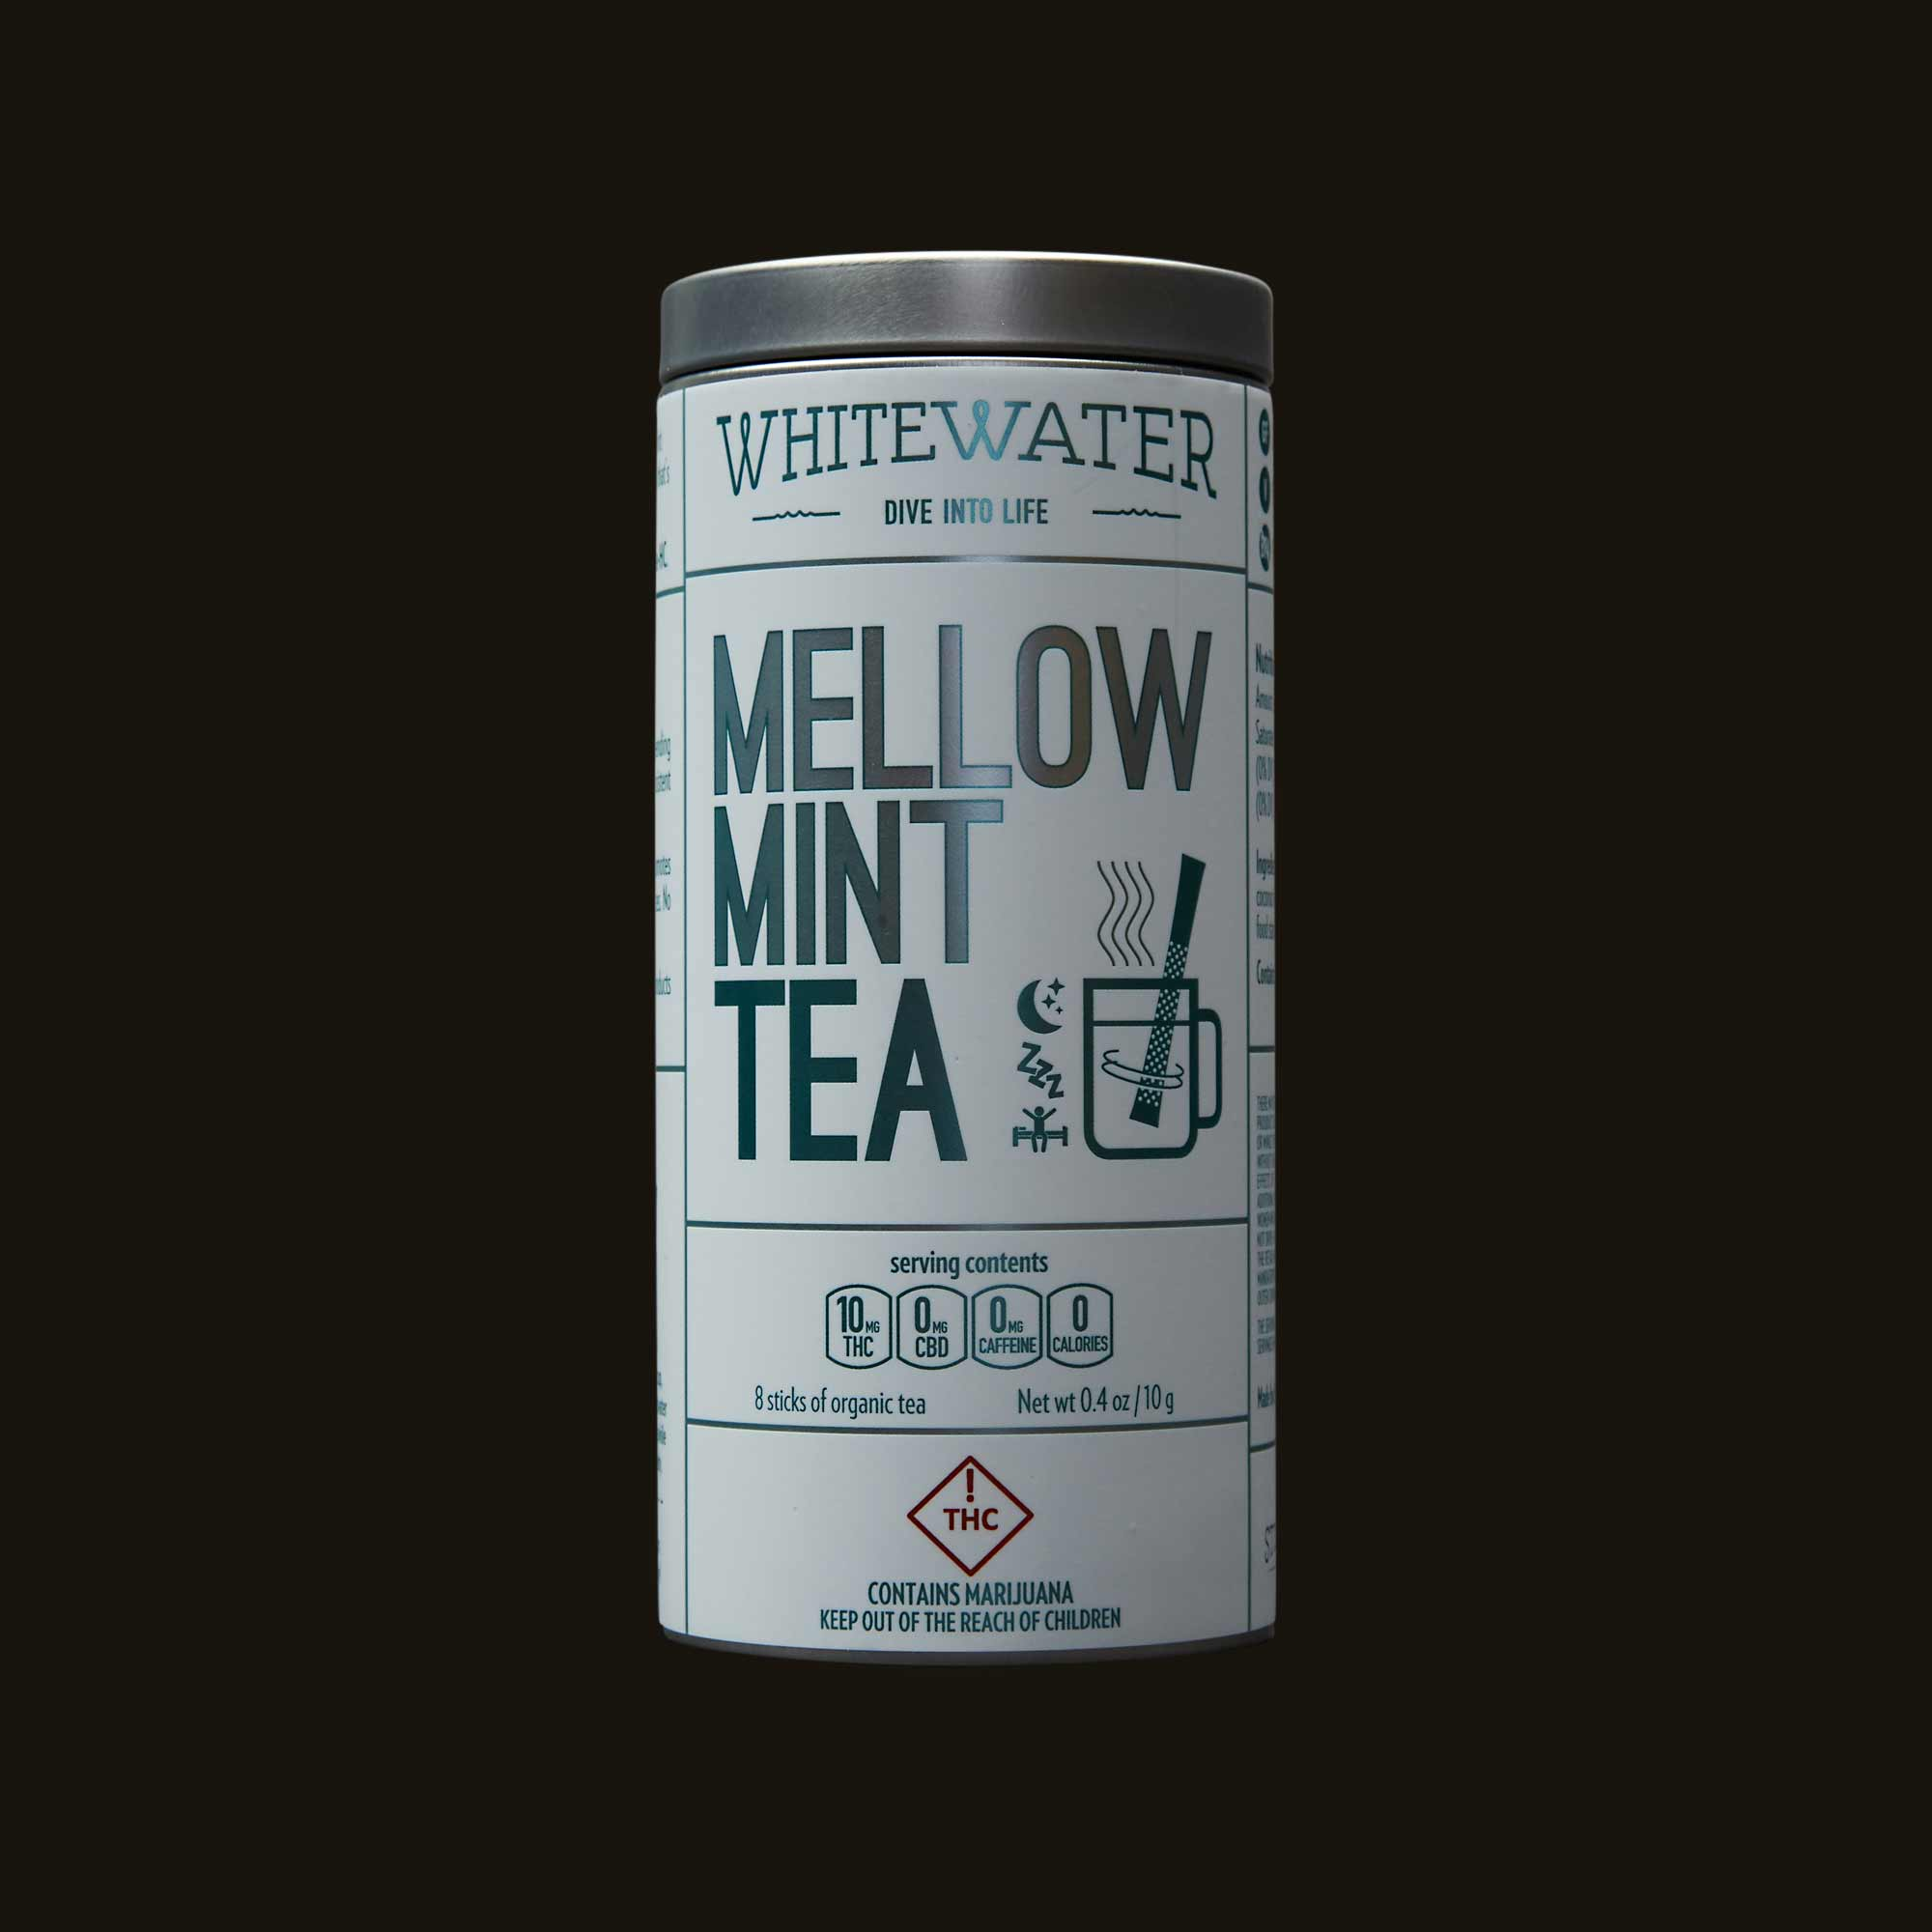 Stillwater Whitewater Mellow Mint